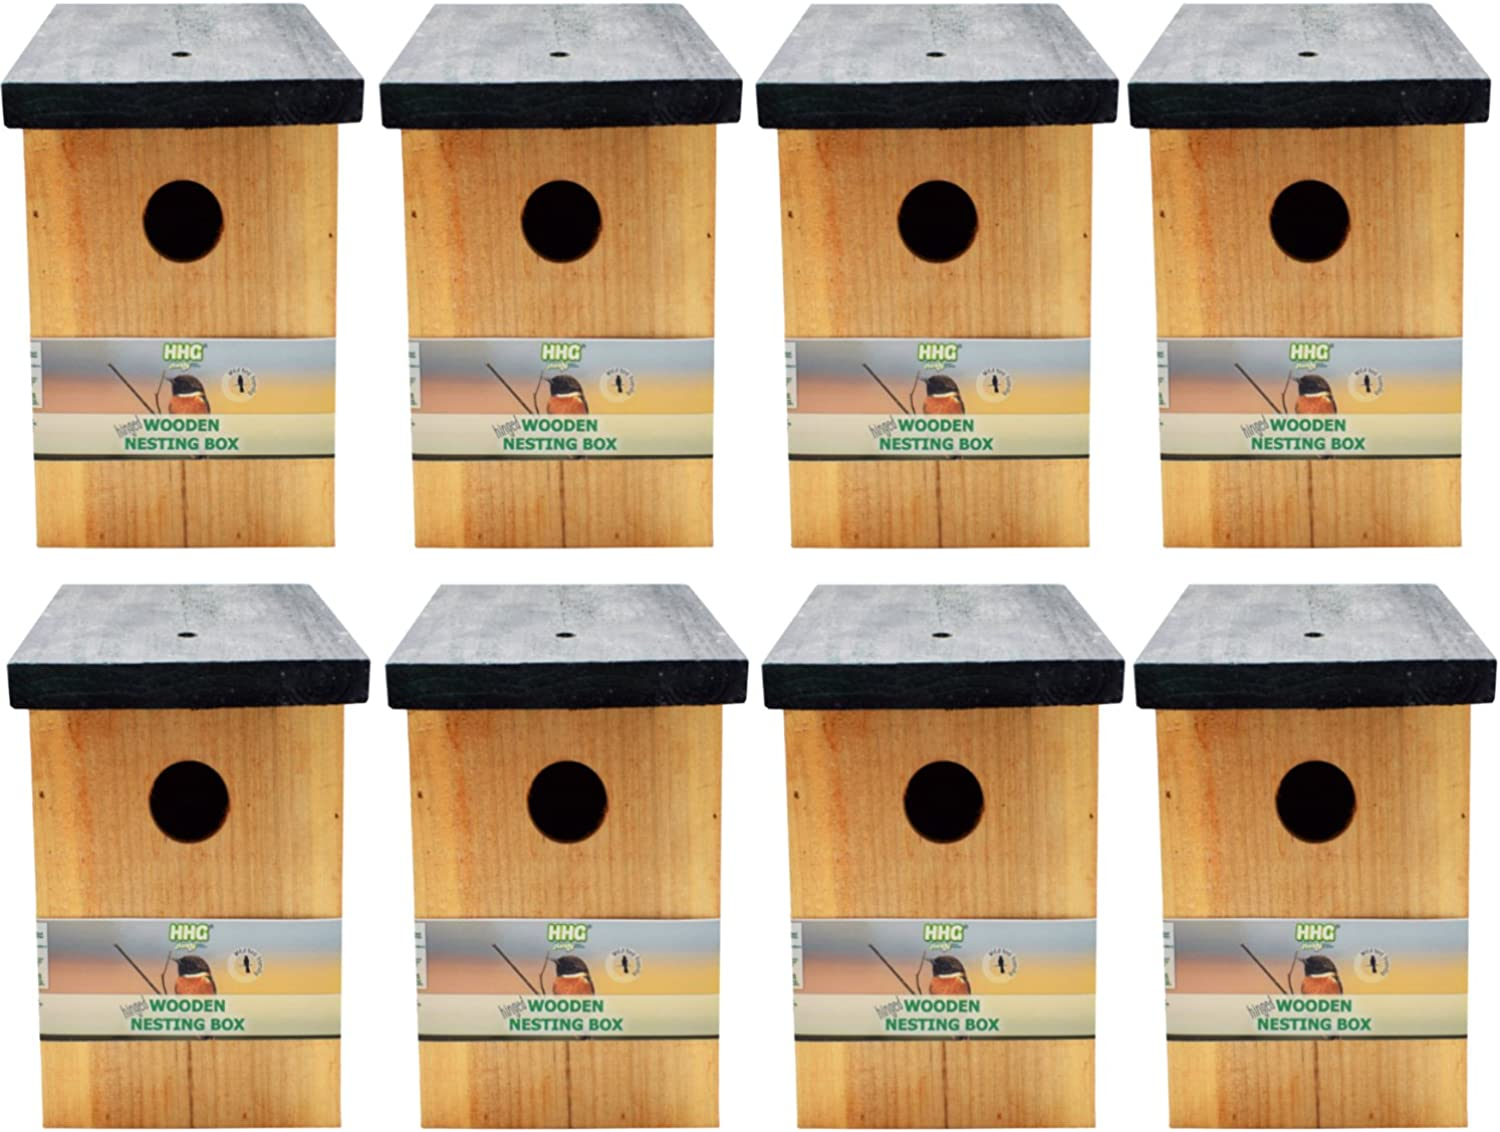 Handy Home and Garden 8 x Pressure Treated Wooden Wild Bird House Wood Nesting Box HHGBF017  Multi Buy Bundles Available